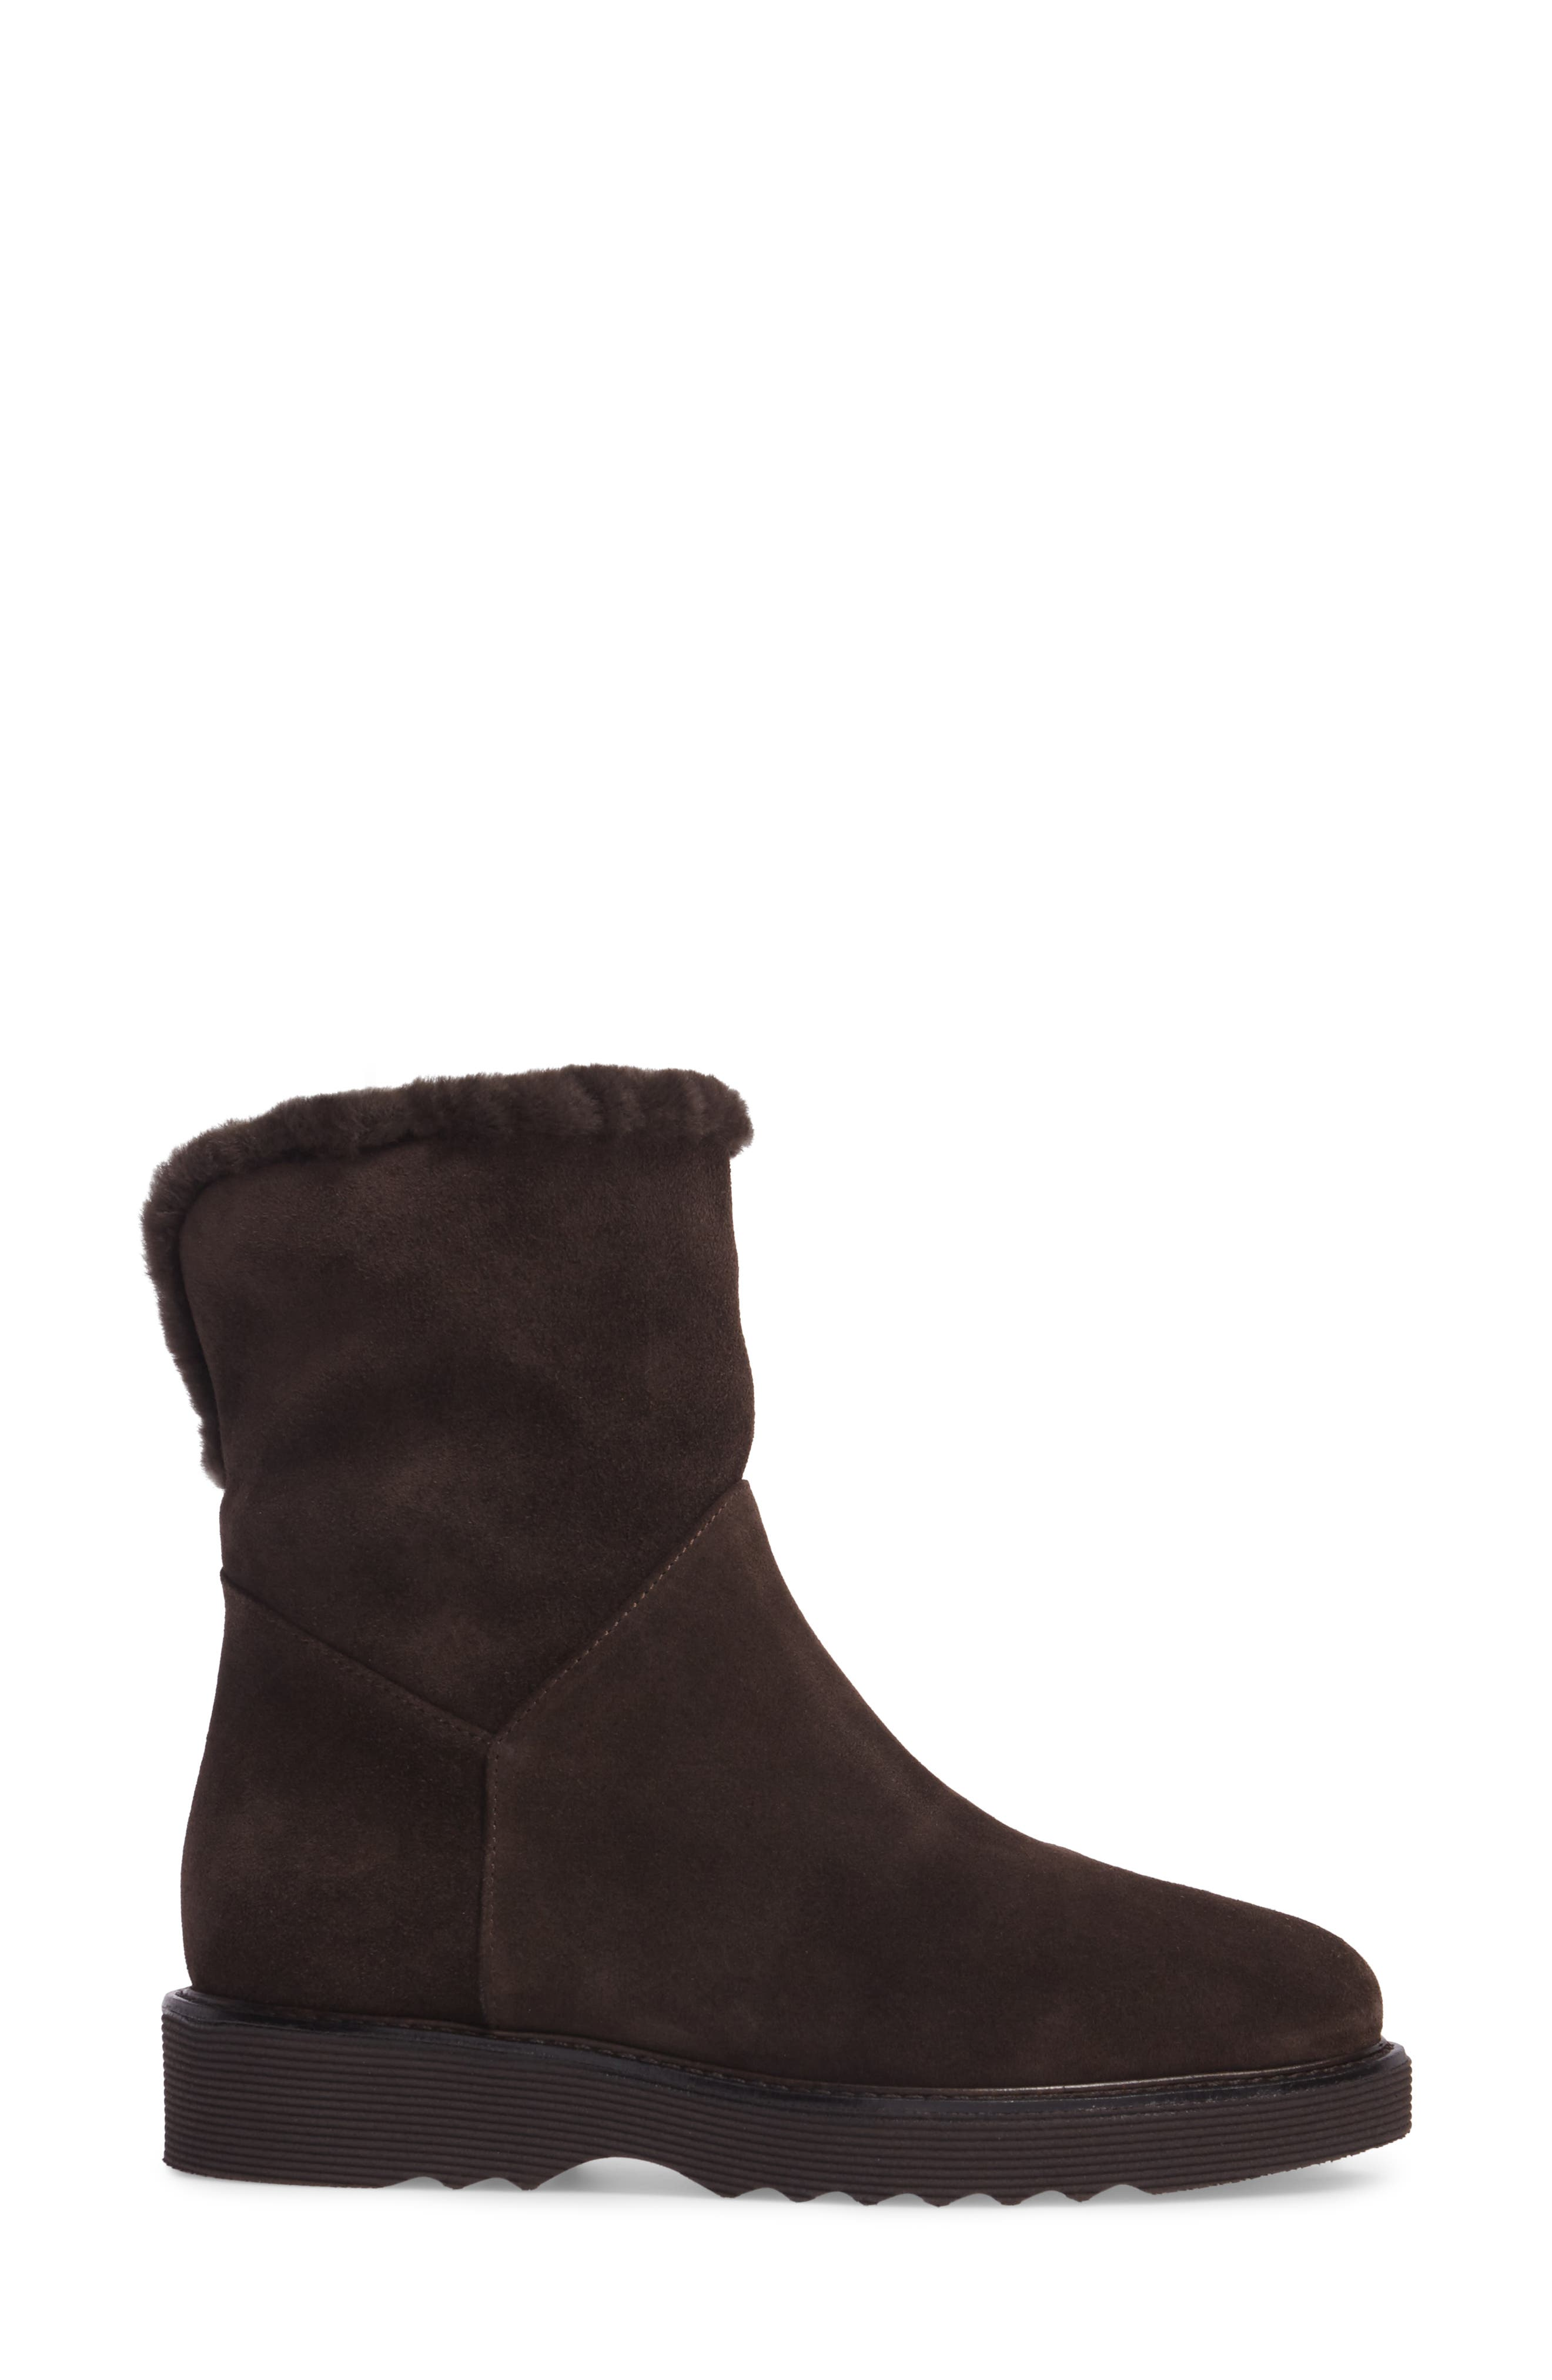 Kimberly Weatherproof Genuine Shearling Bootie,                             Alternate thumbnail 12, color,